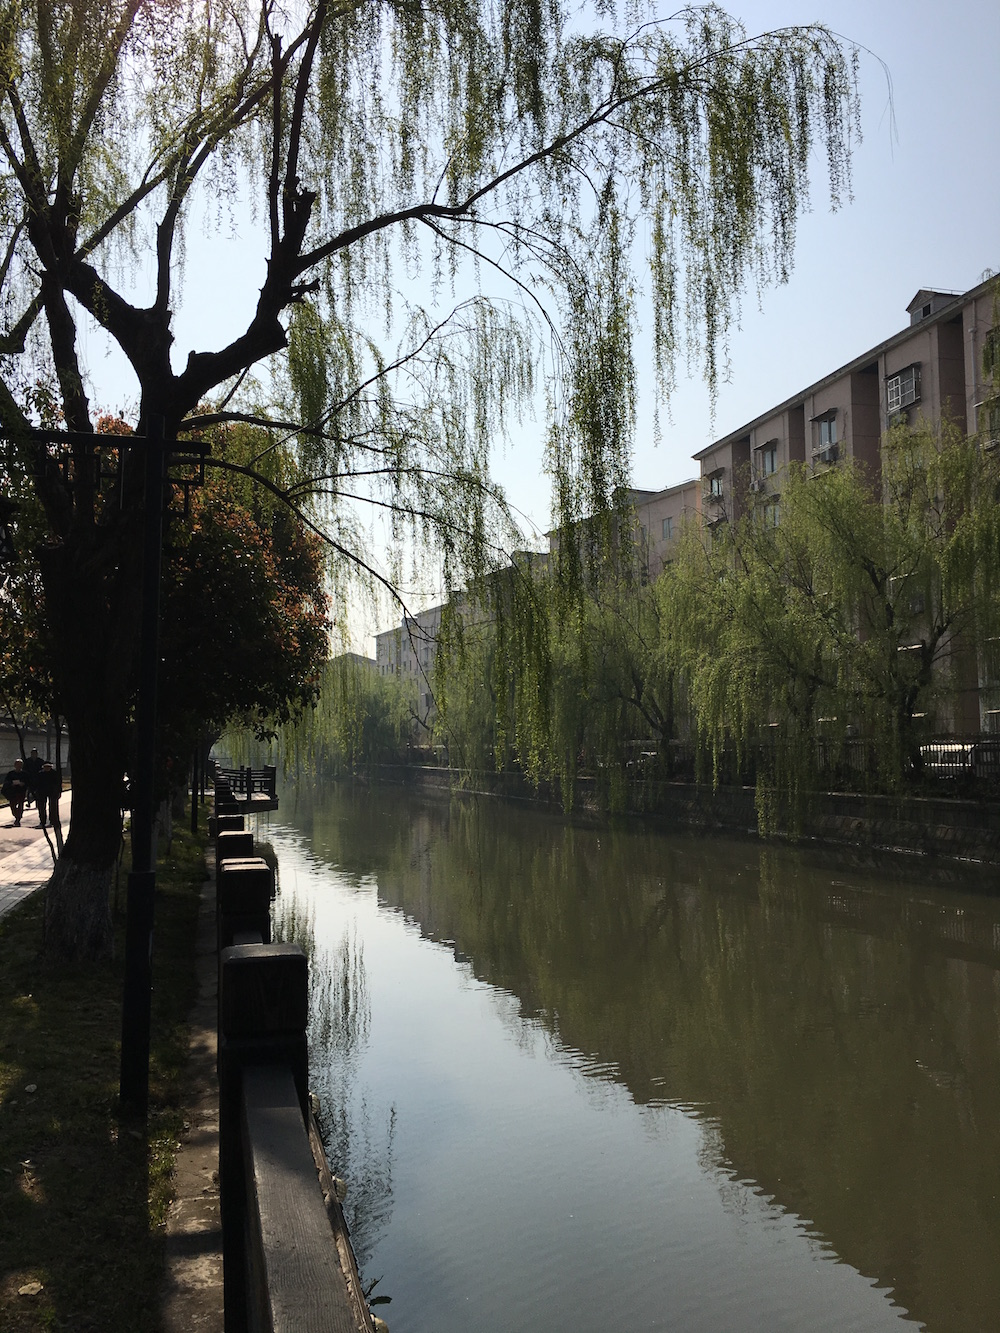 While running errands, we walked past a park. There was a river with fisherman fishing along the sides, birds chirping in their cages along the walls, and old people exercising on rusty Asian park gyms.